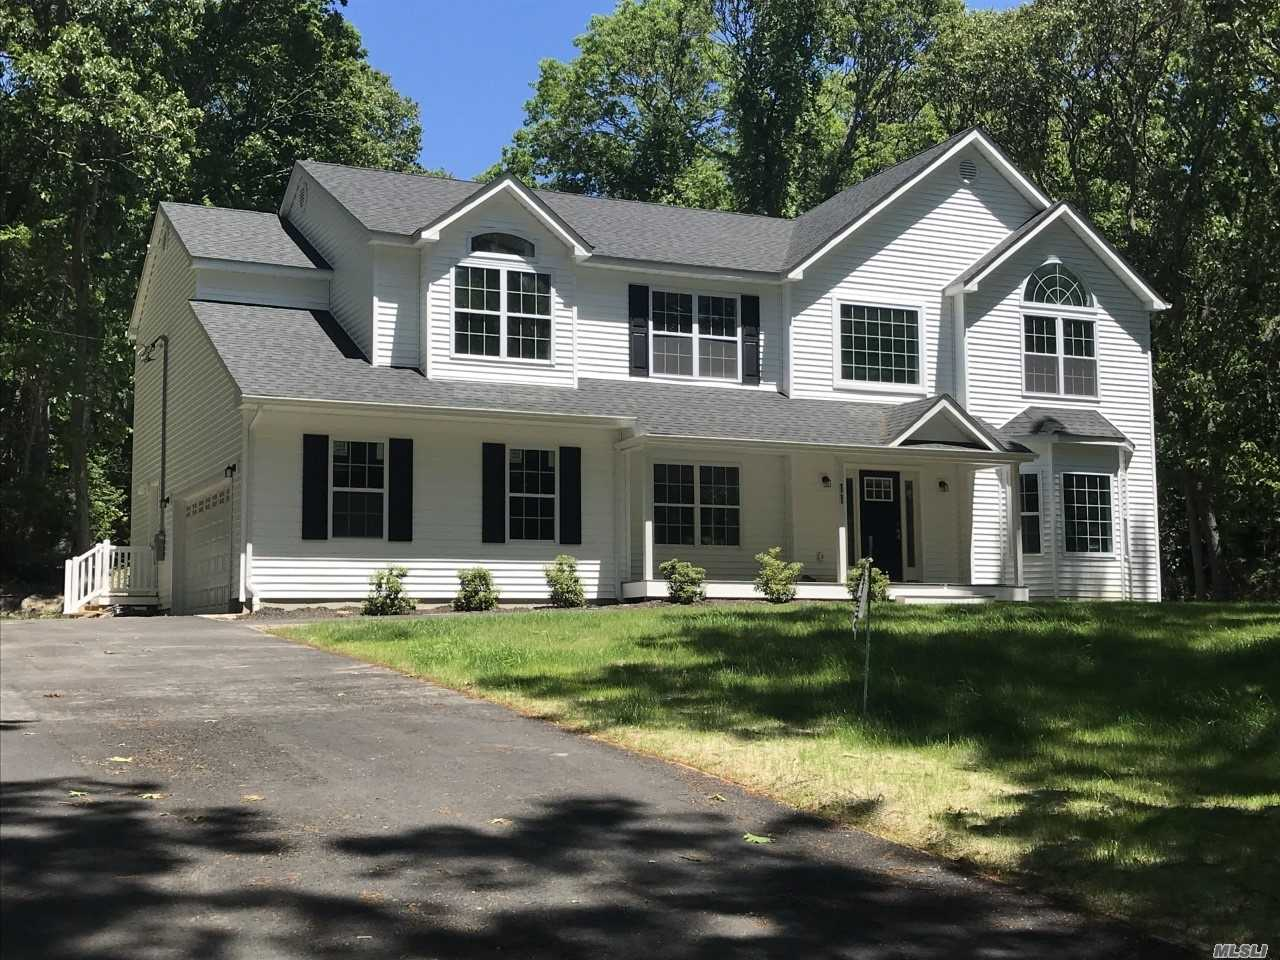 Lot 11 Shortwood Ln - Setauket, New York